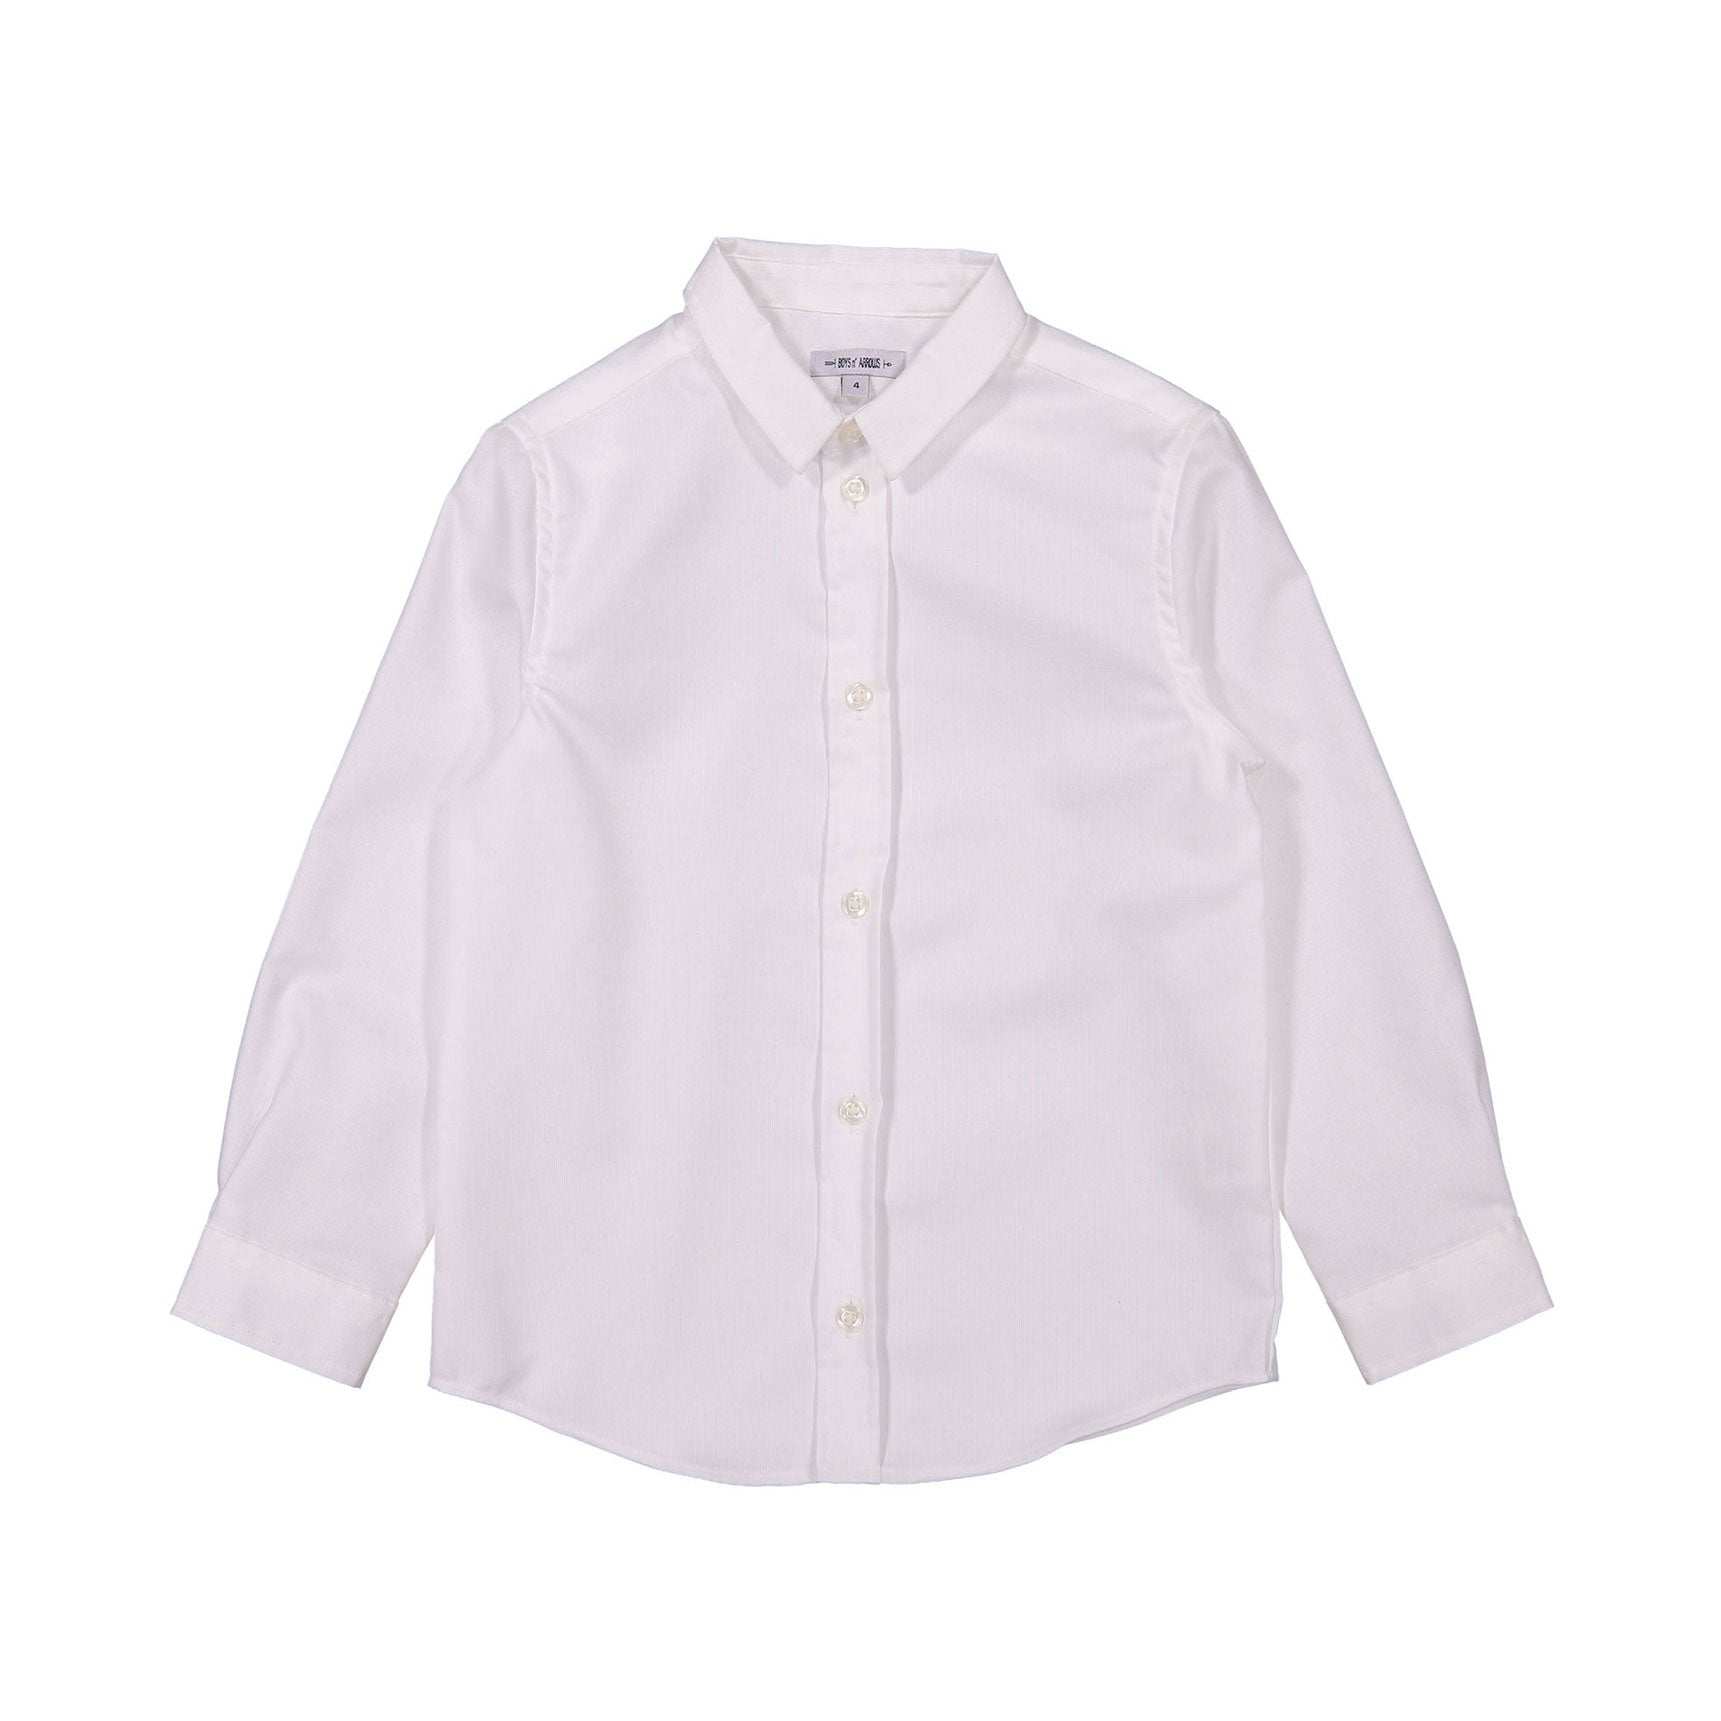 Boys and Arrows White Long Sleeve Shirt